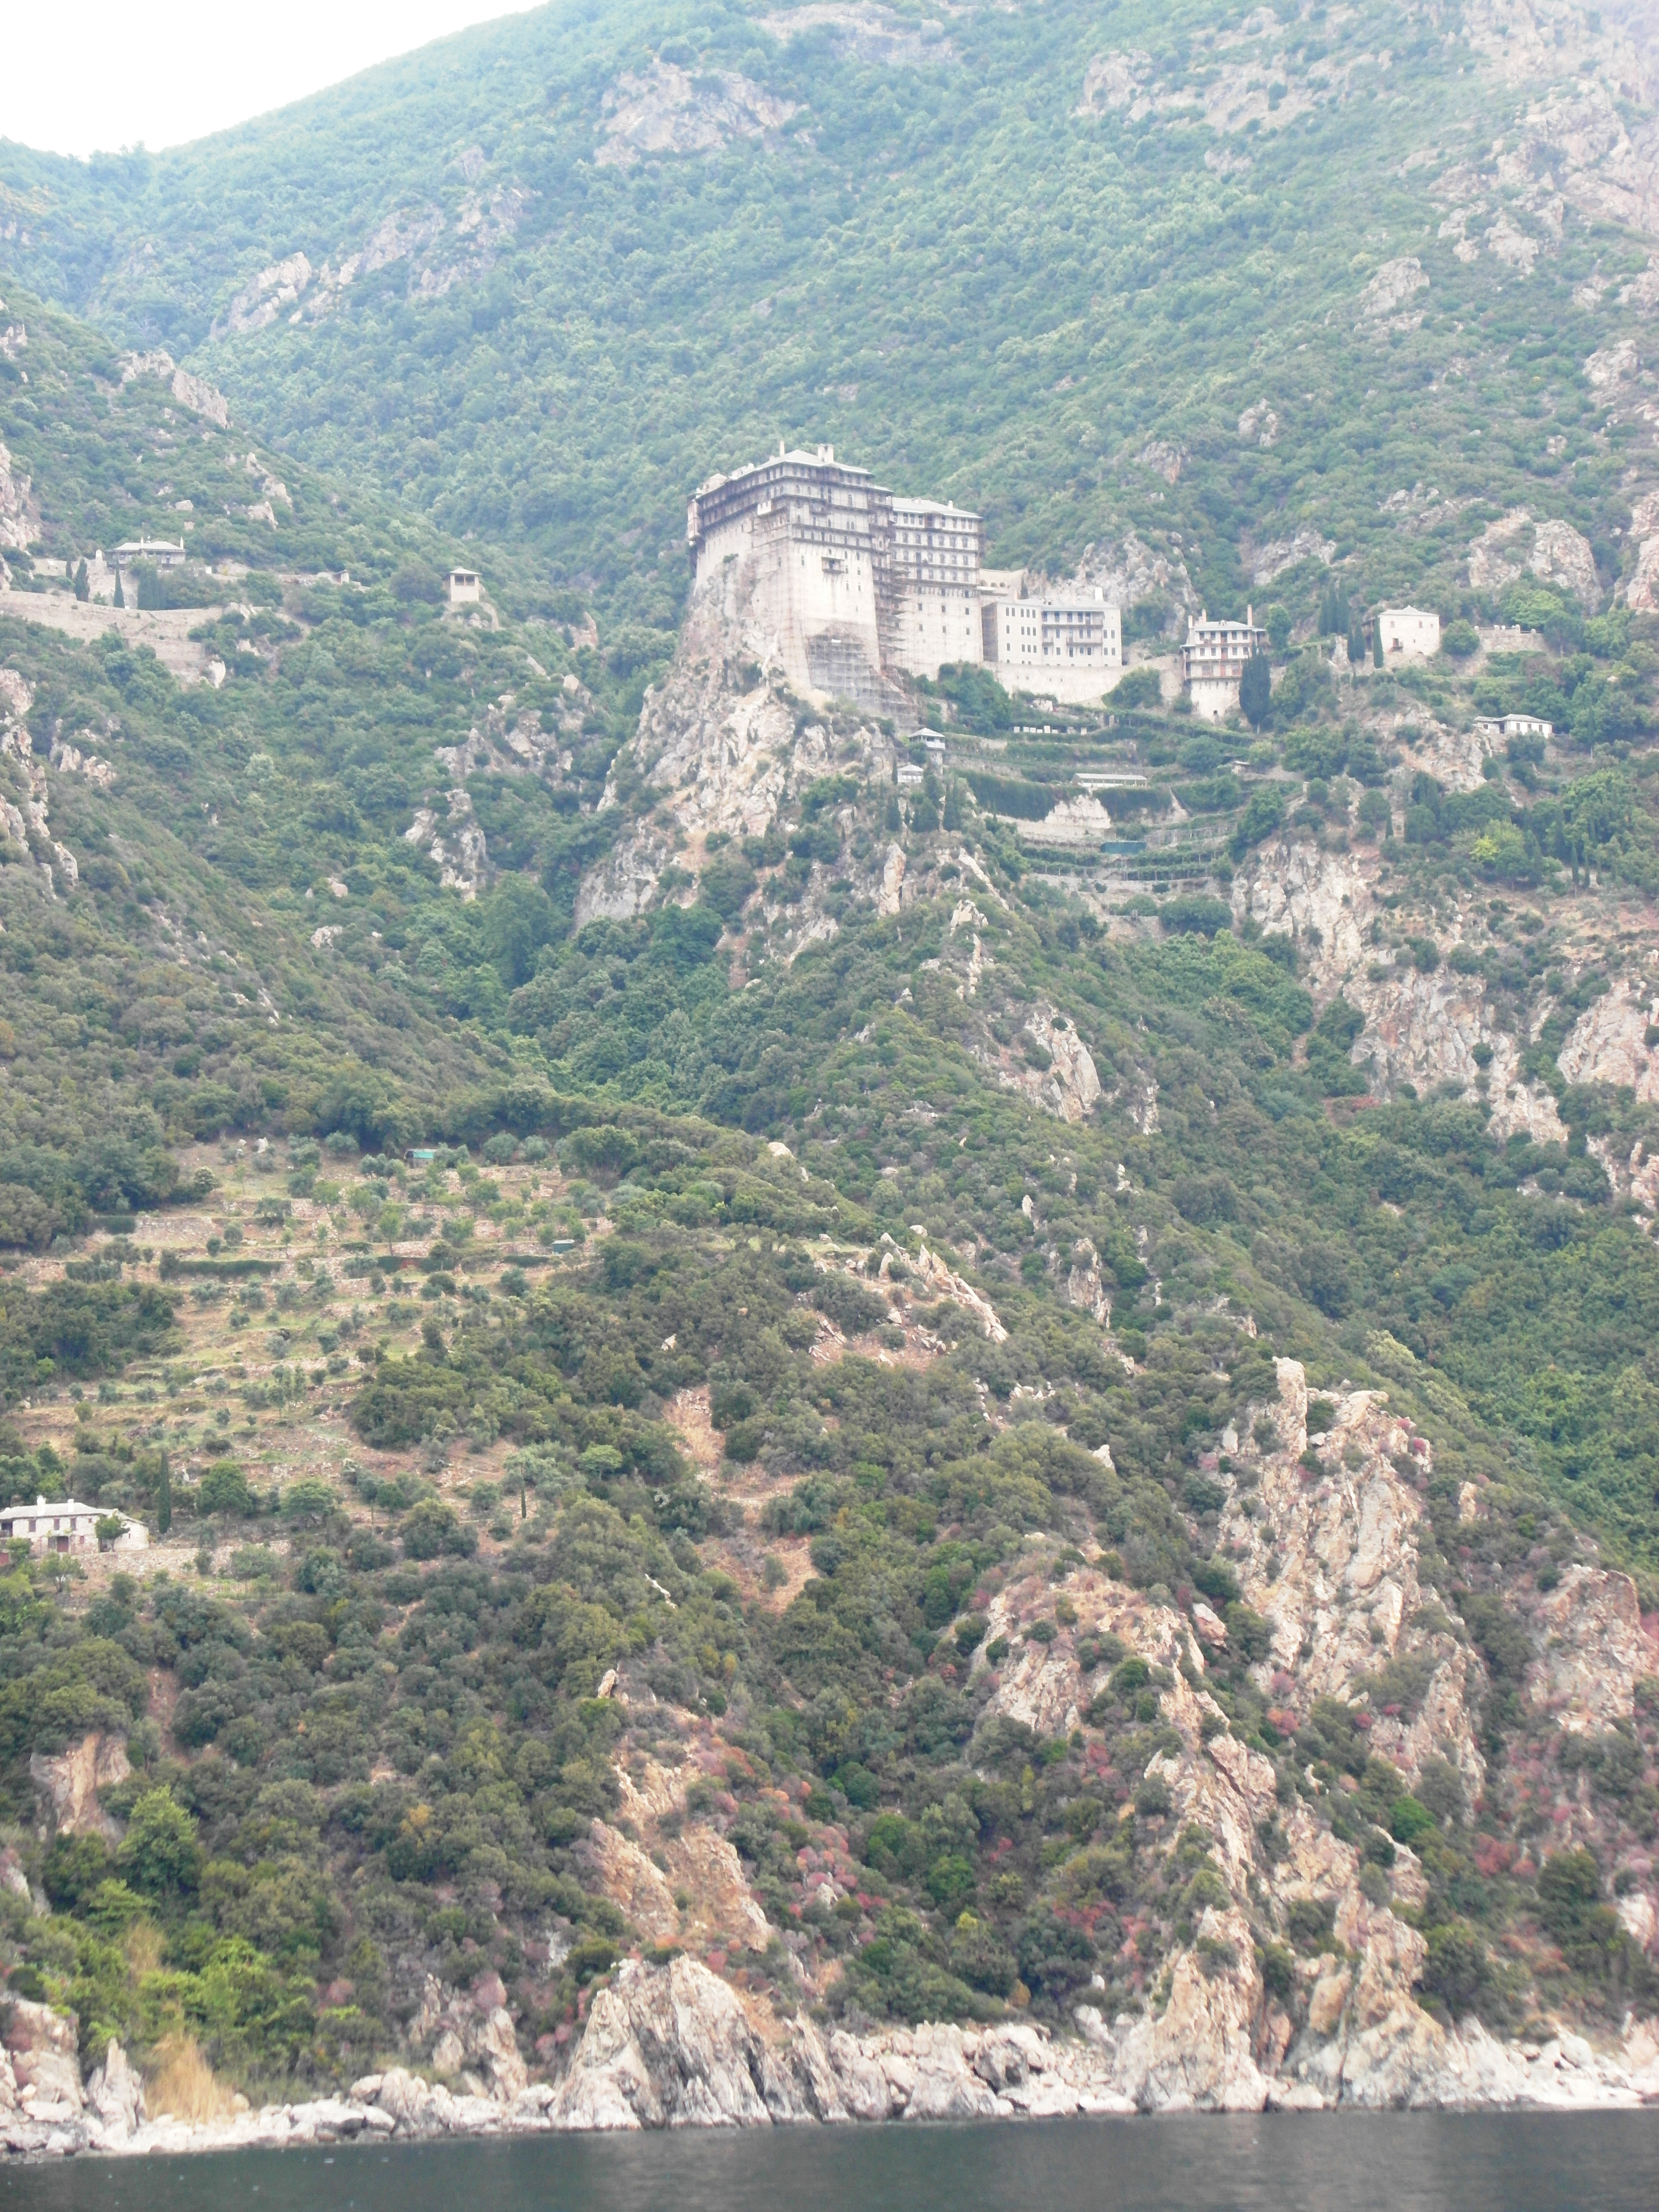 Mount Athos : One of the monasteries